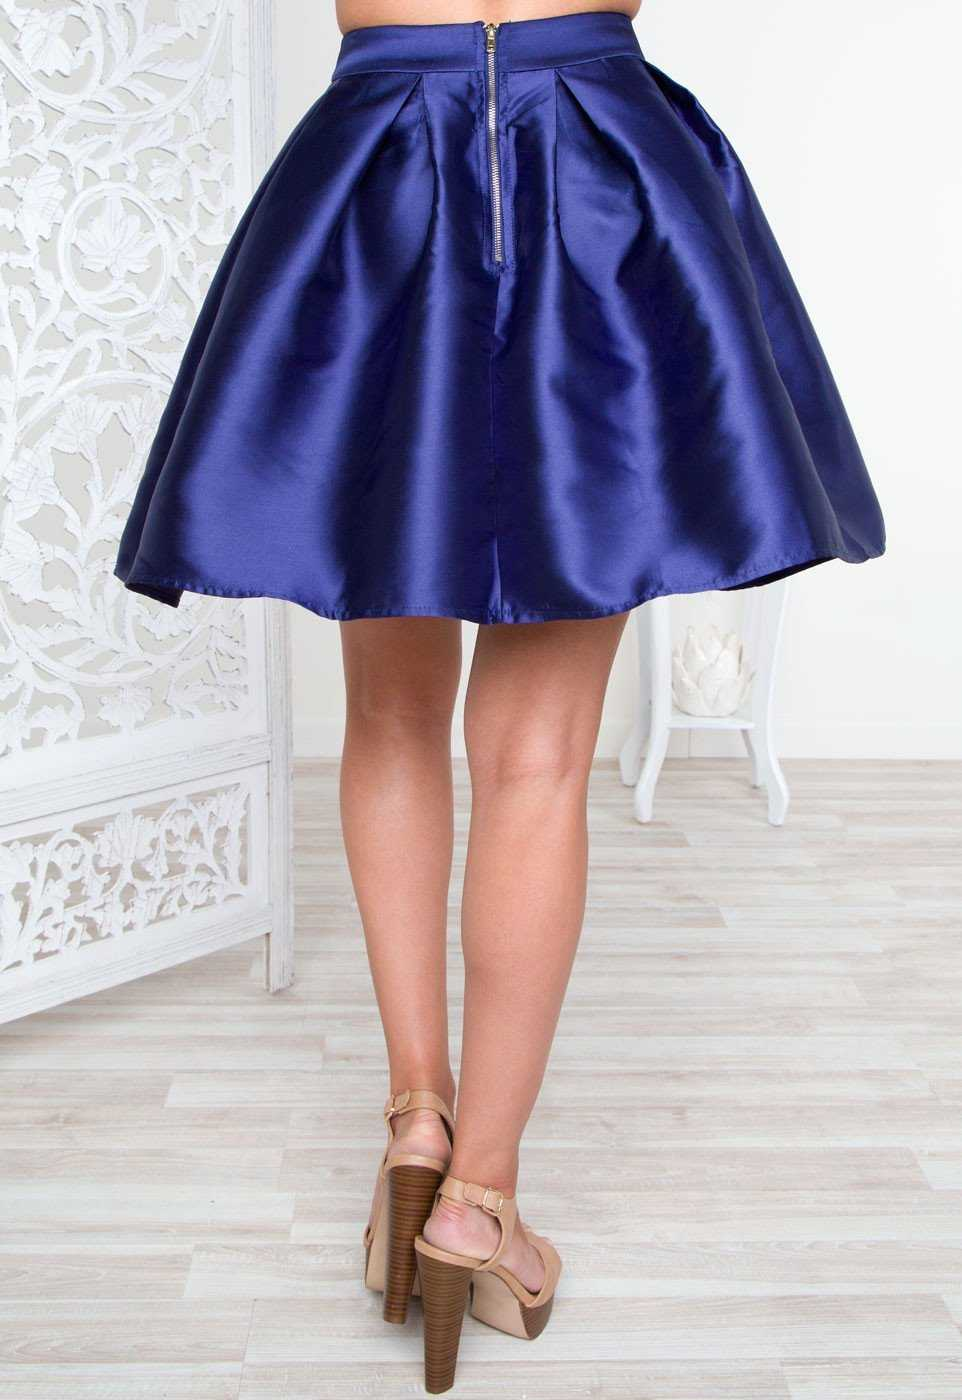 Skirts - What You See Skirt - Blue